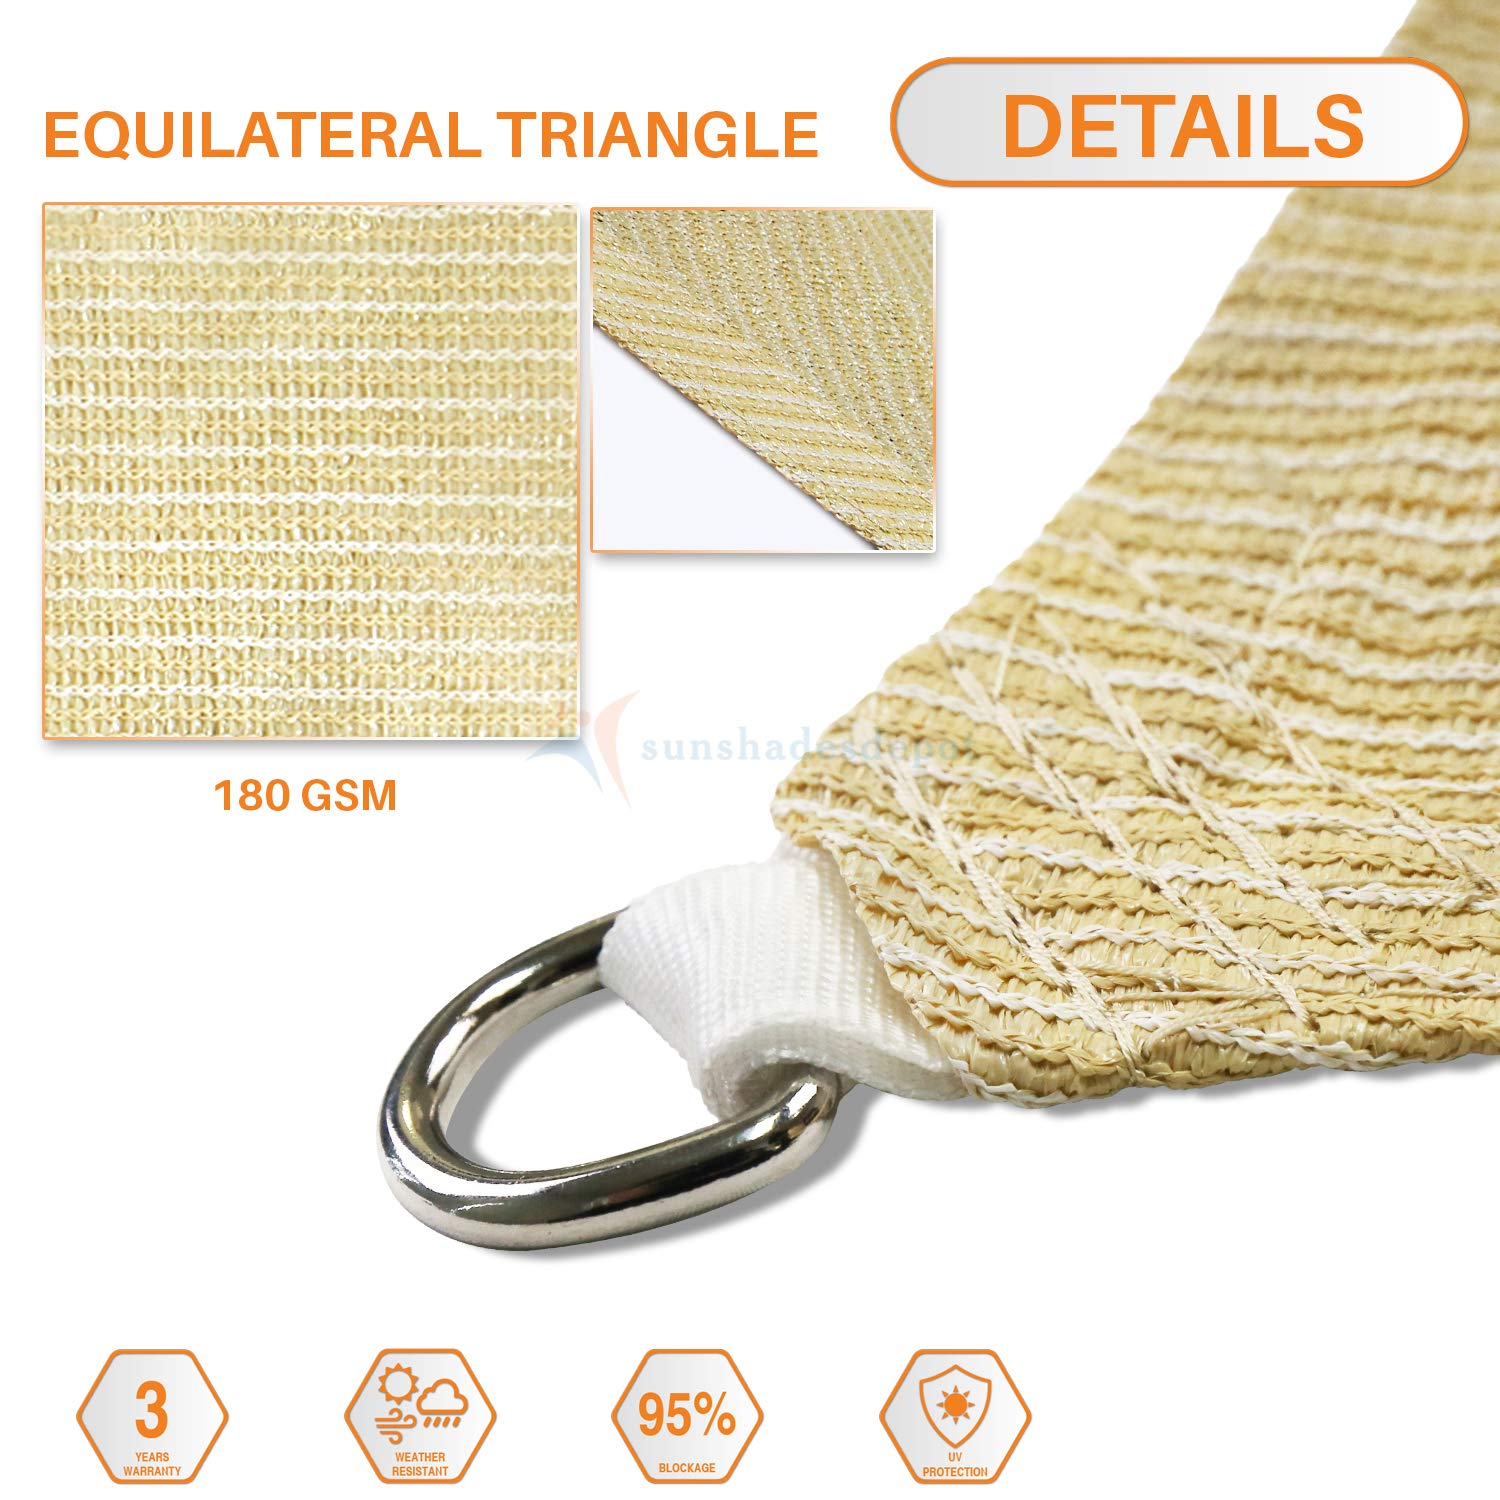 Sunshades Depot 20 x20 x20 Sun Shade Sail 180 GSM Equilateral Triangle Permeable Canopy Tan Beige Custom Commercial Standard